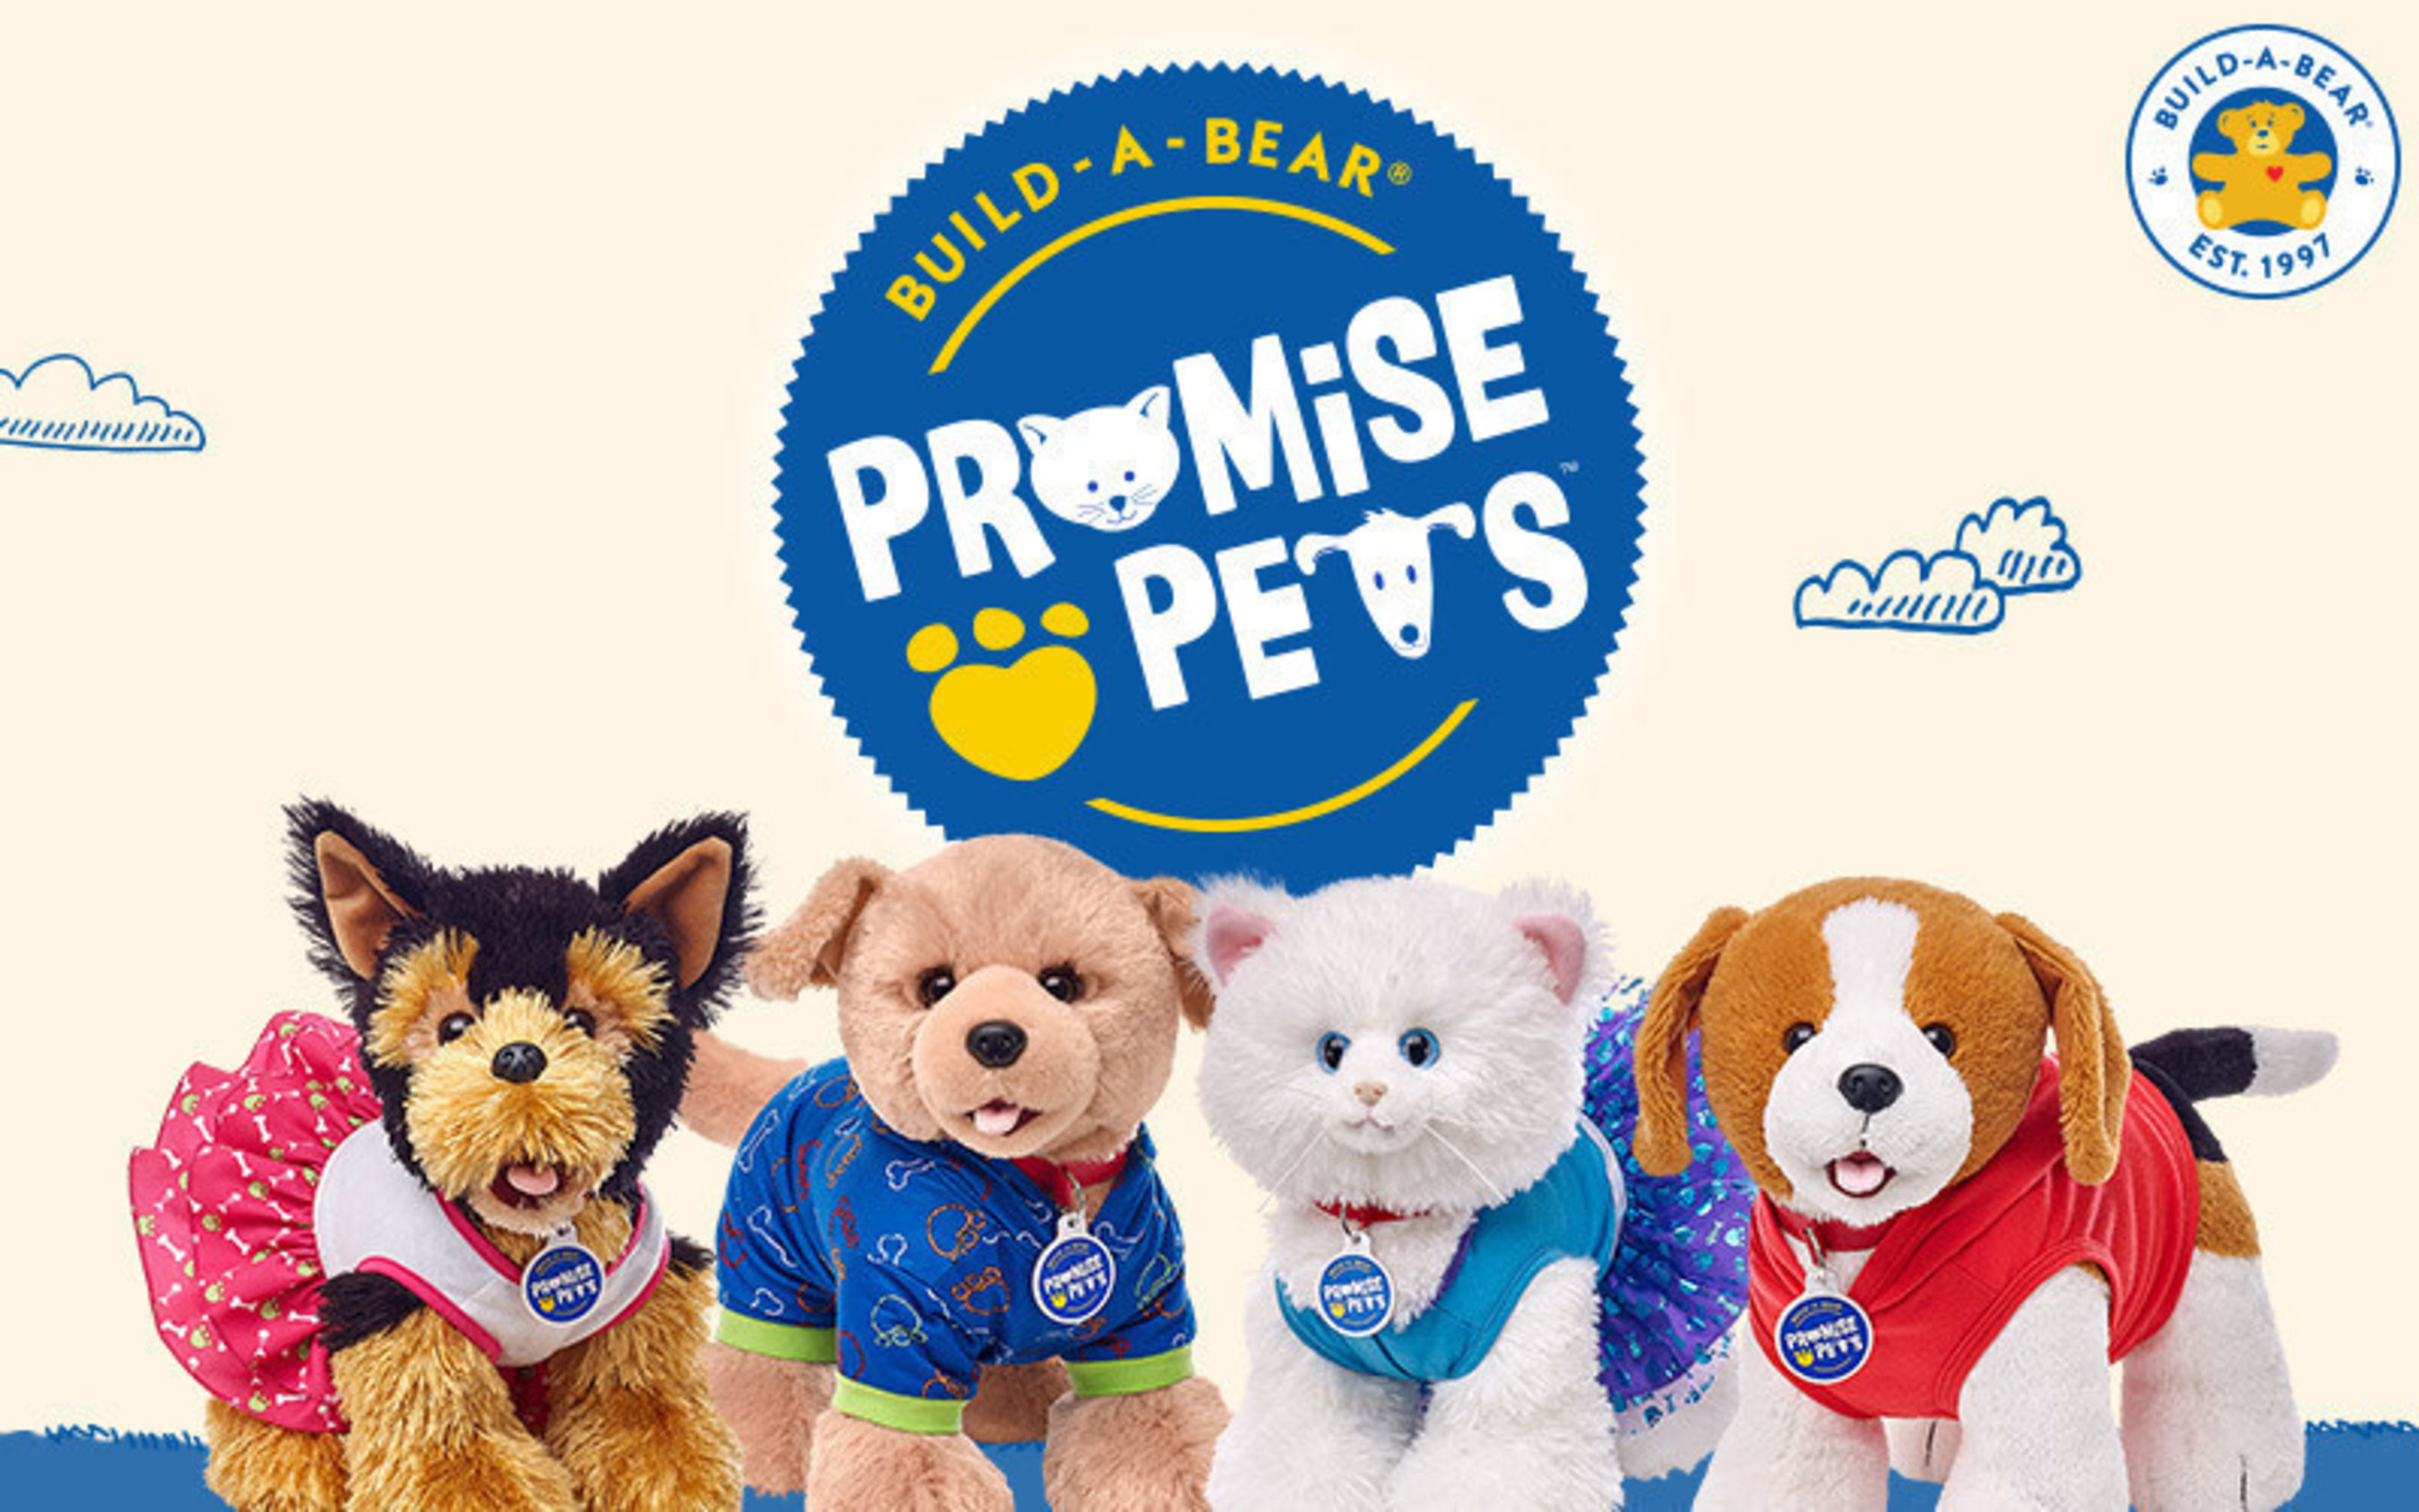 d2993c9ad22 Build-A-Bear has launched its newest product line - Promise Pets - the